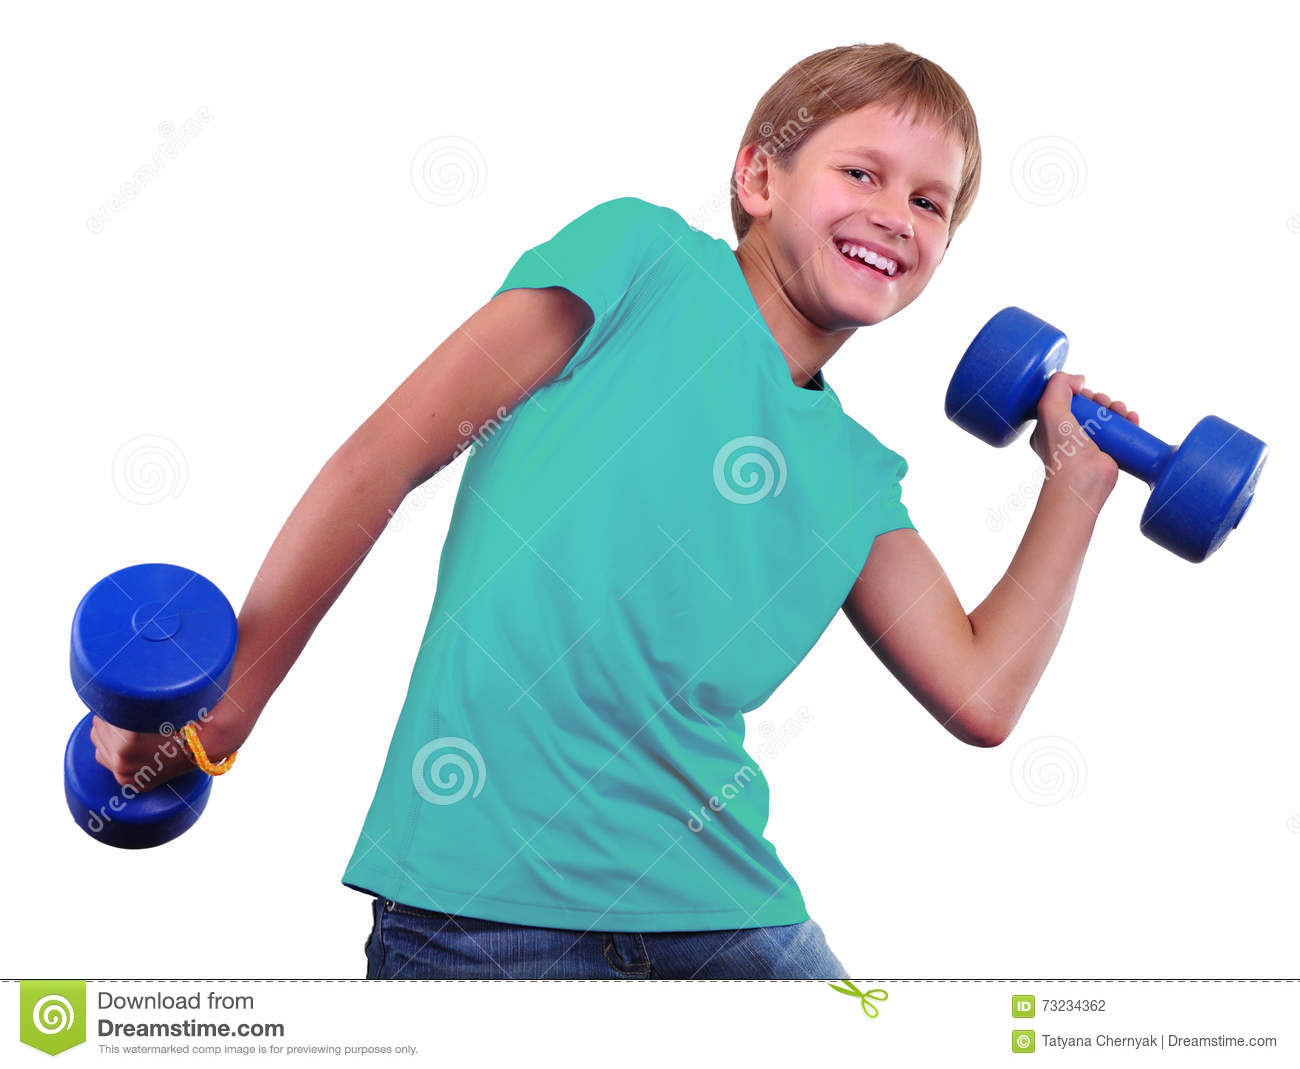 teenage sportive boy is doing exercises sporty childhood teenagerteenage sportive boy is doing exercises sport healthy lifestyle concept sporty childhood teenager exercising and posing with weights